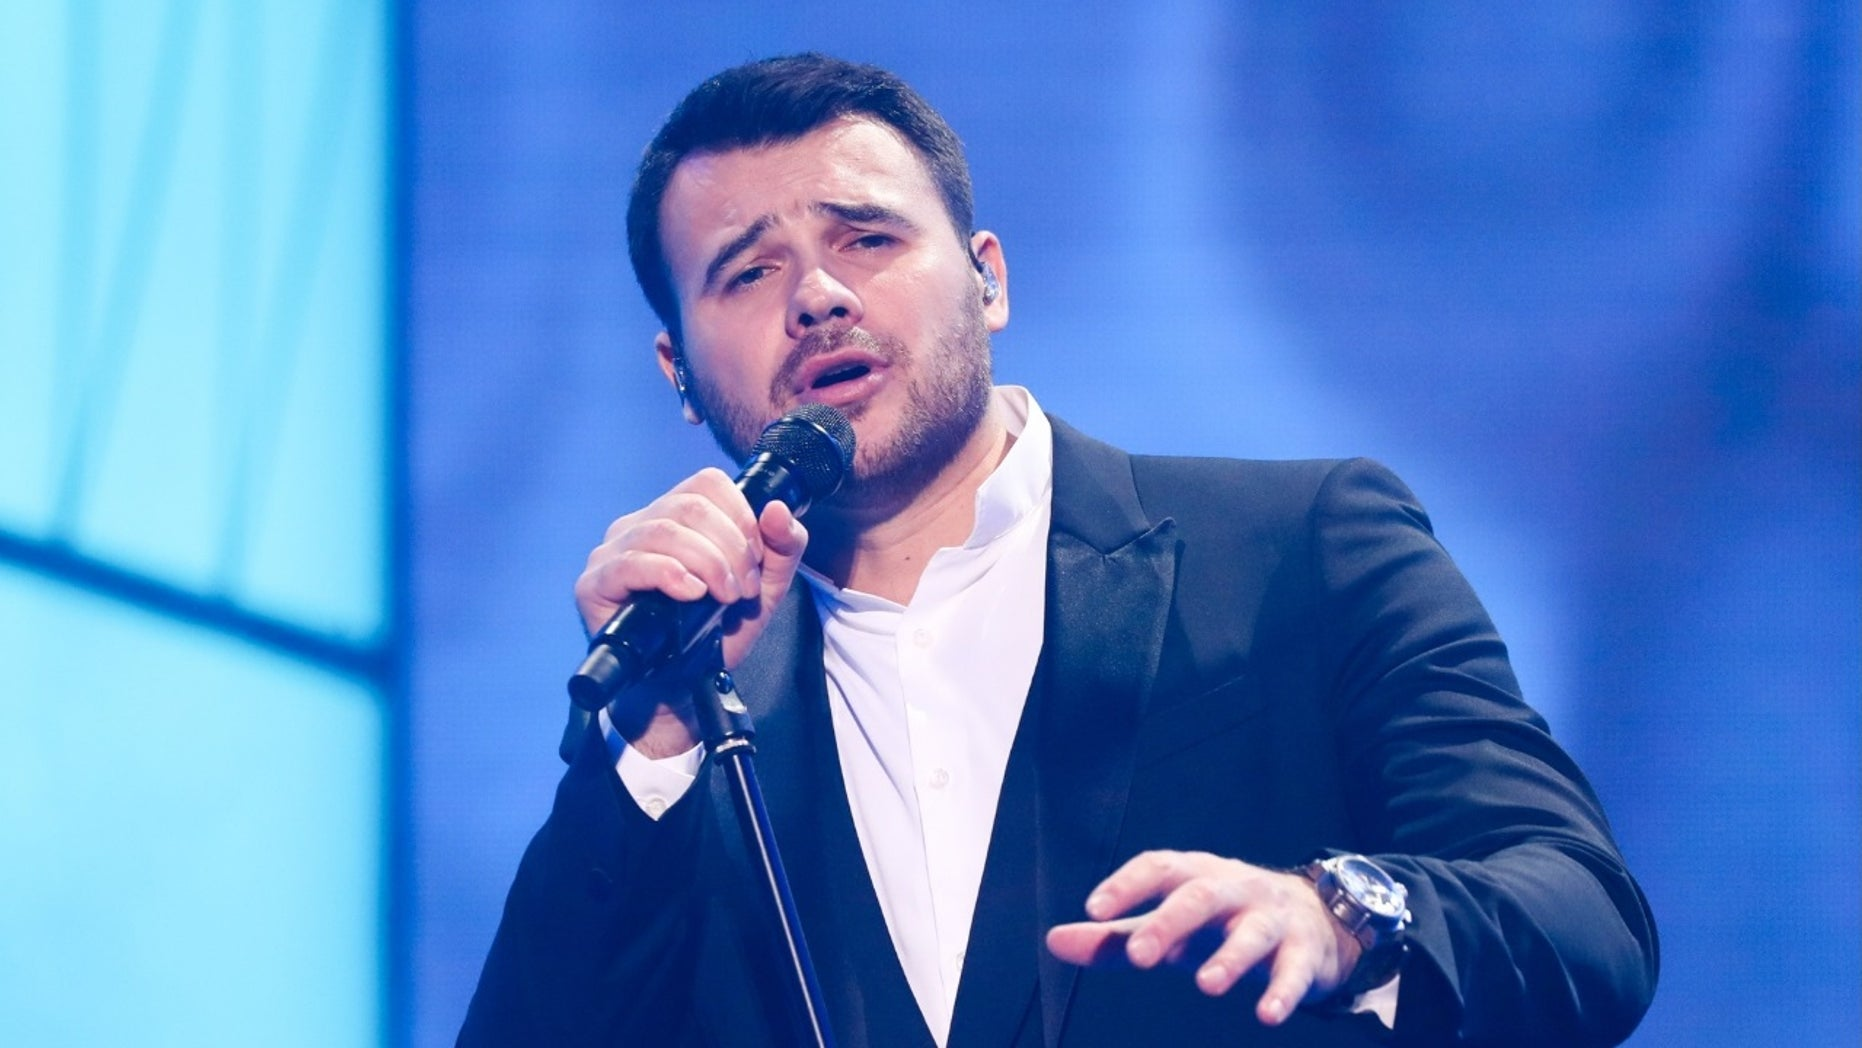 Emin Agalarov said he canceled his North American tour.